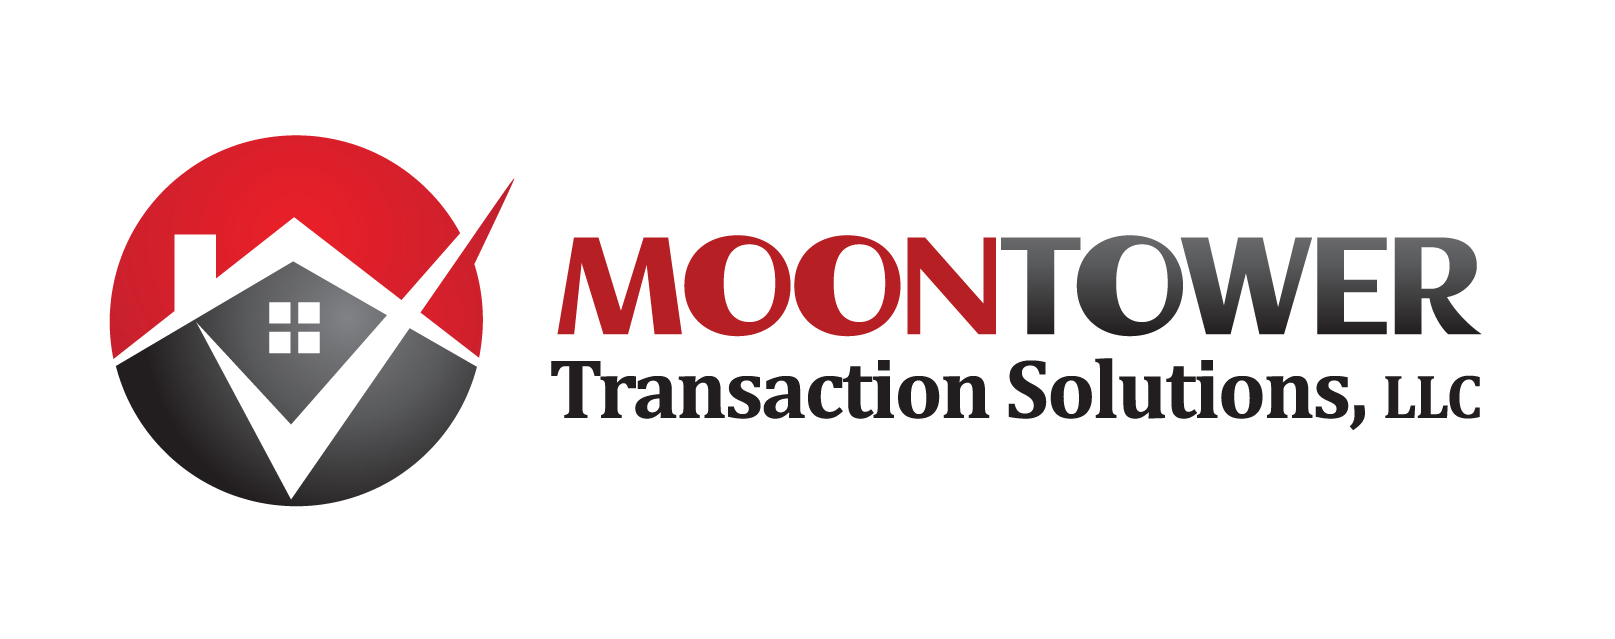 Moontower Transaction Solutions, LLC logo